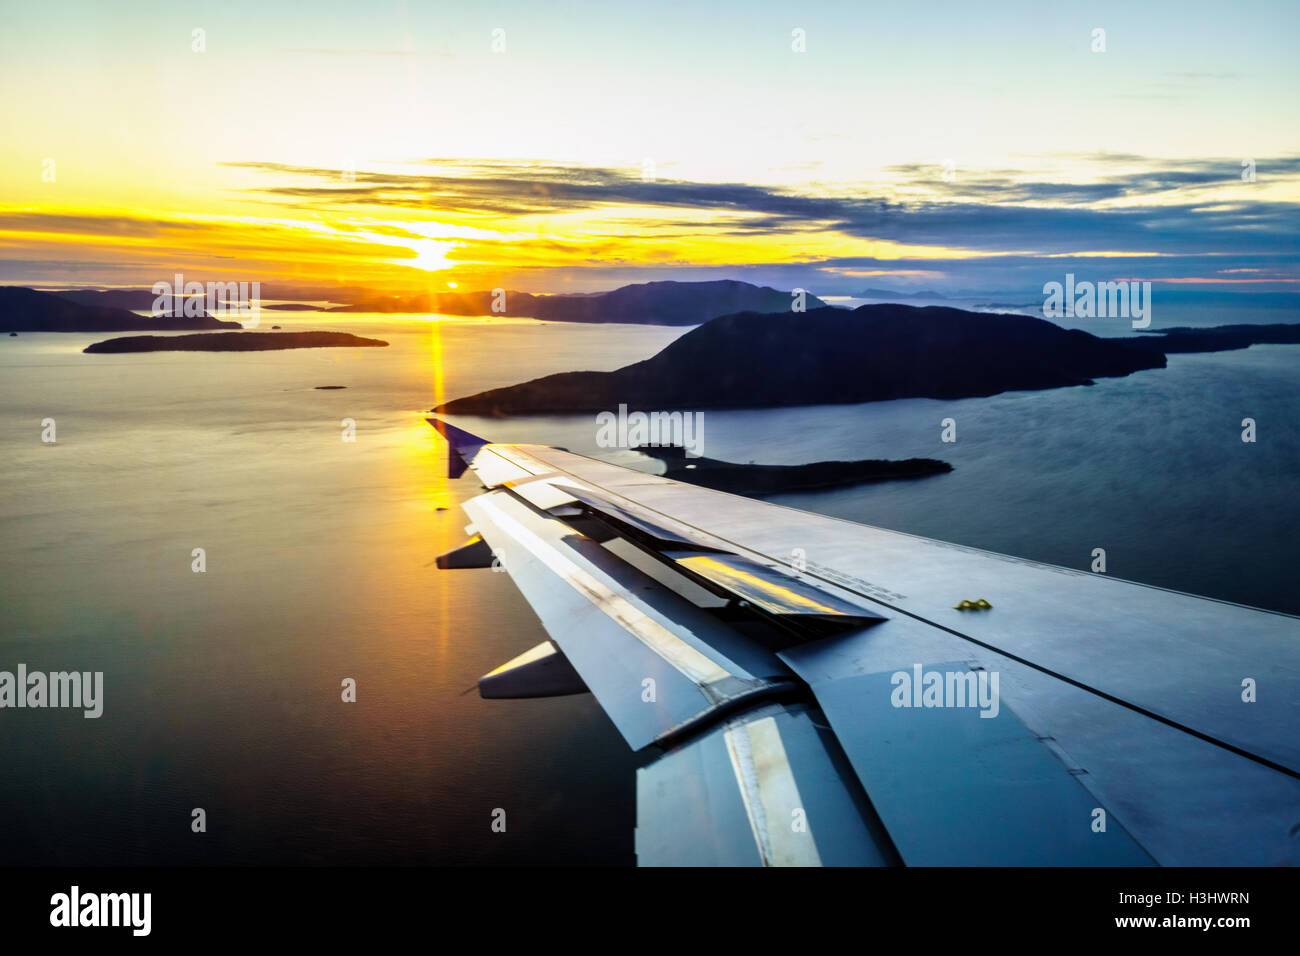 Sunset over Juan de Fuca Street and airplane wing of the coast of Bellingham in Washington State when preparing - Stock Image